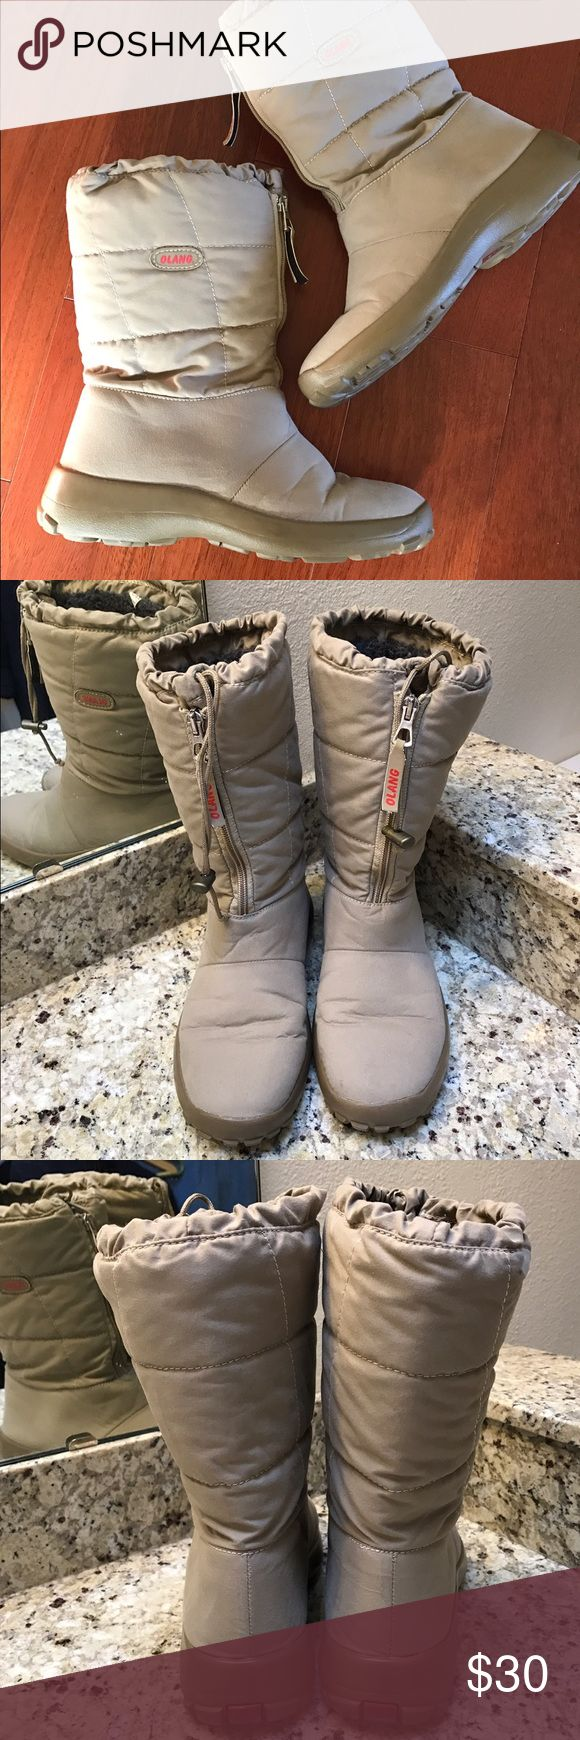 Olang Winter Boots Viola Beige Great winter boots! Comply and cozy, beige color goes with everything! No flaws like new! Olang Shoes Winter & Rain Boots